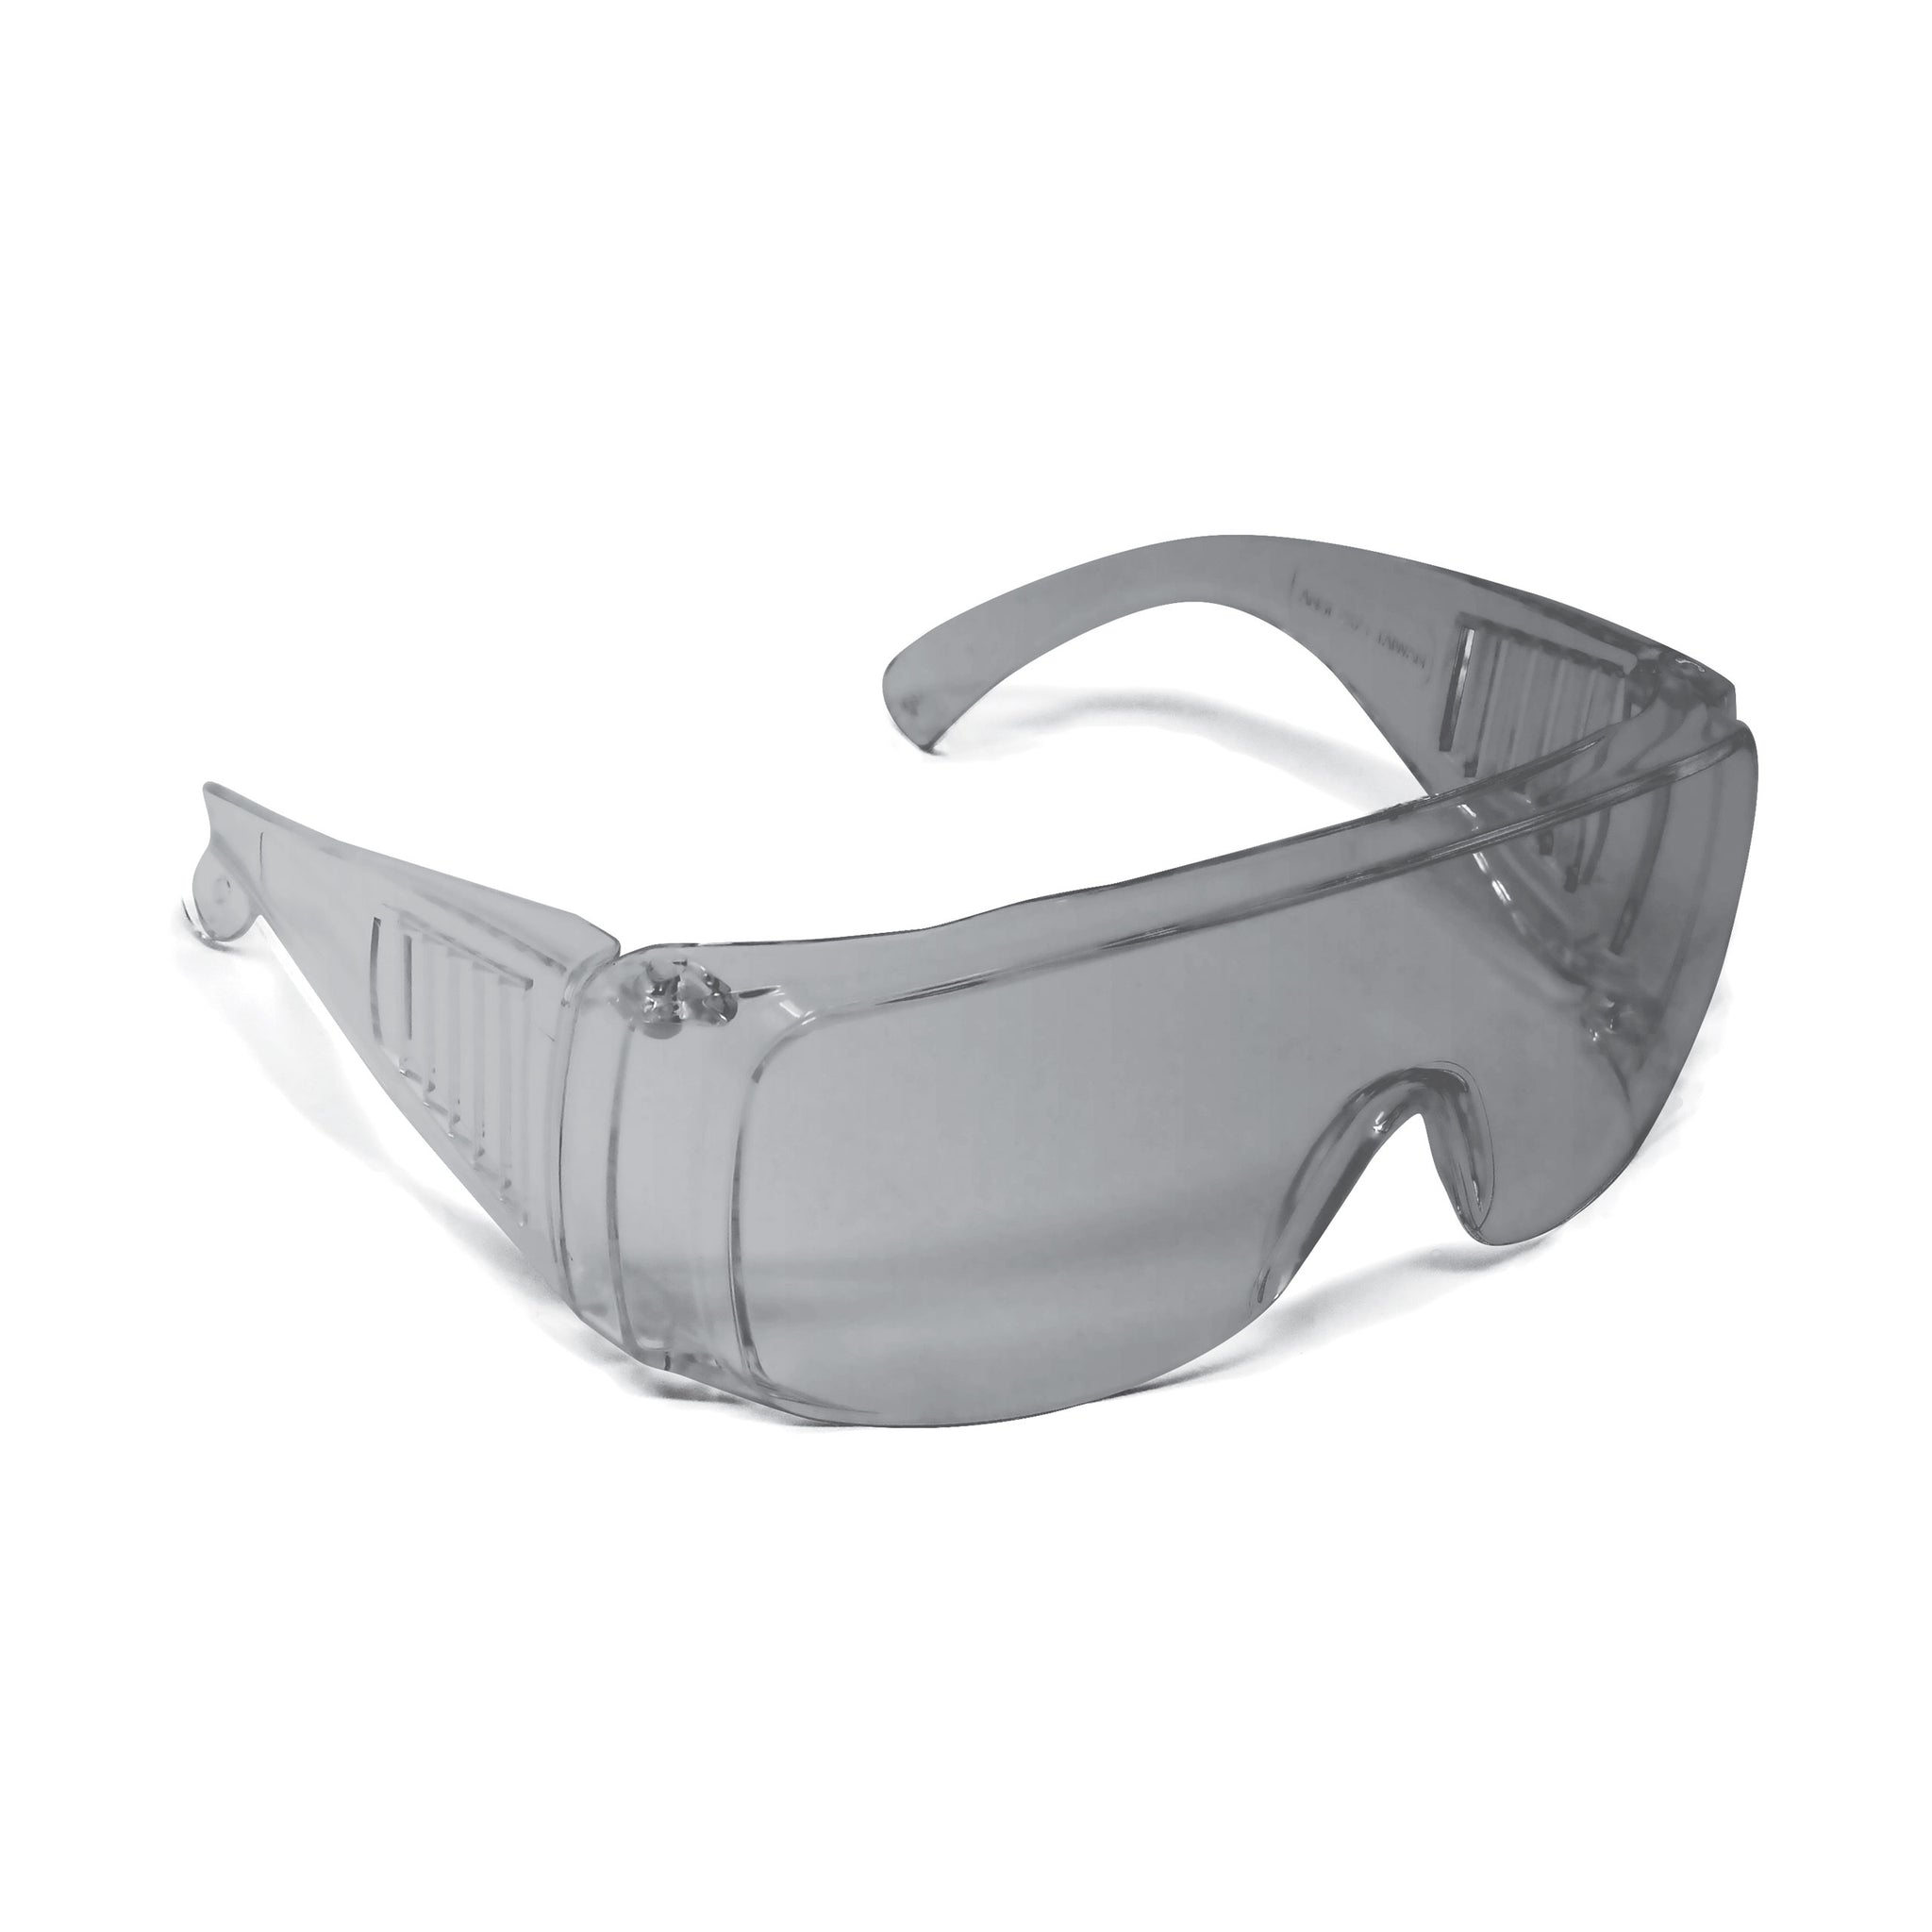 Visitor Safety Glasses Grey (12 Pack)